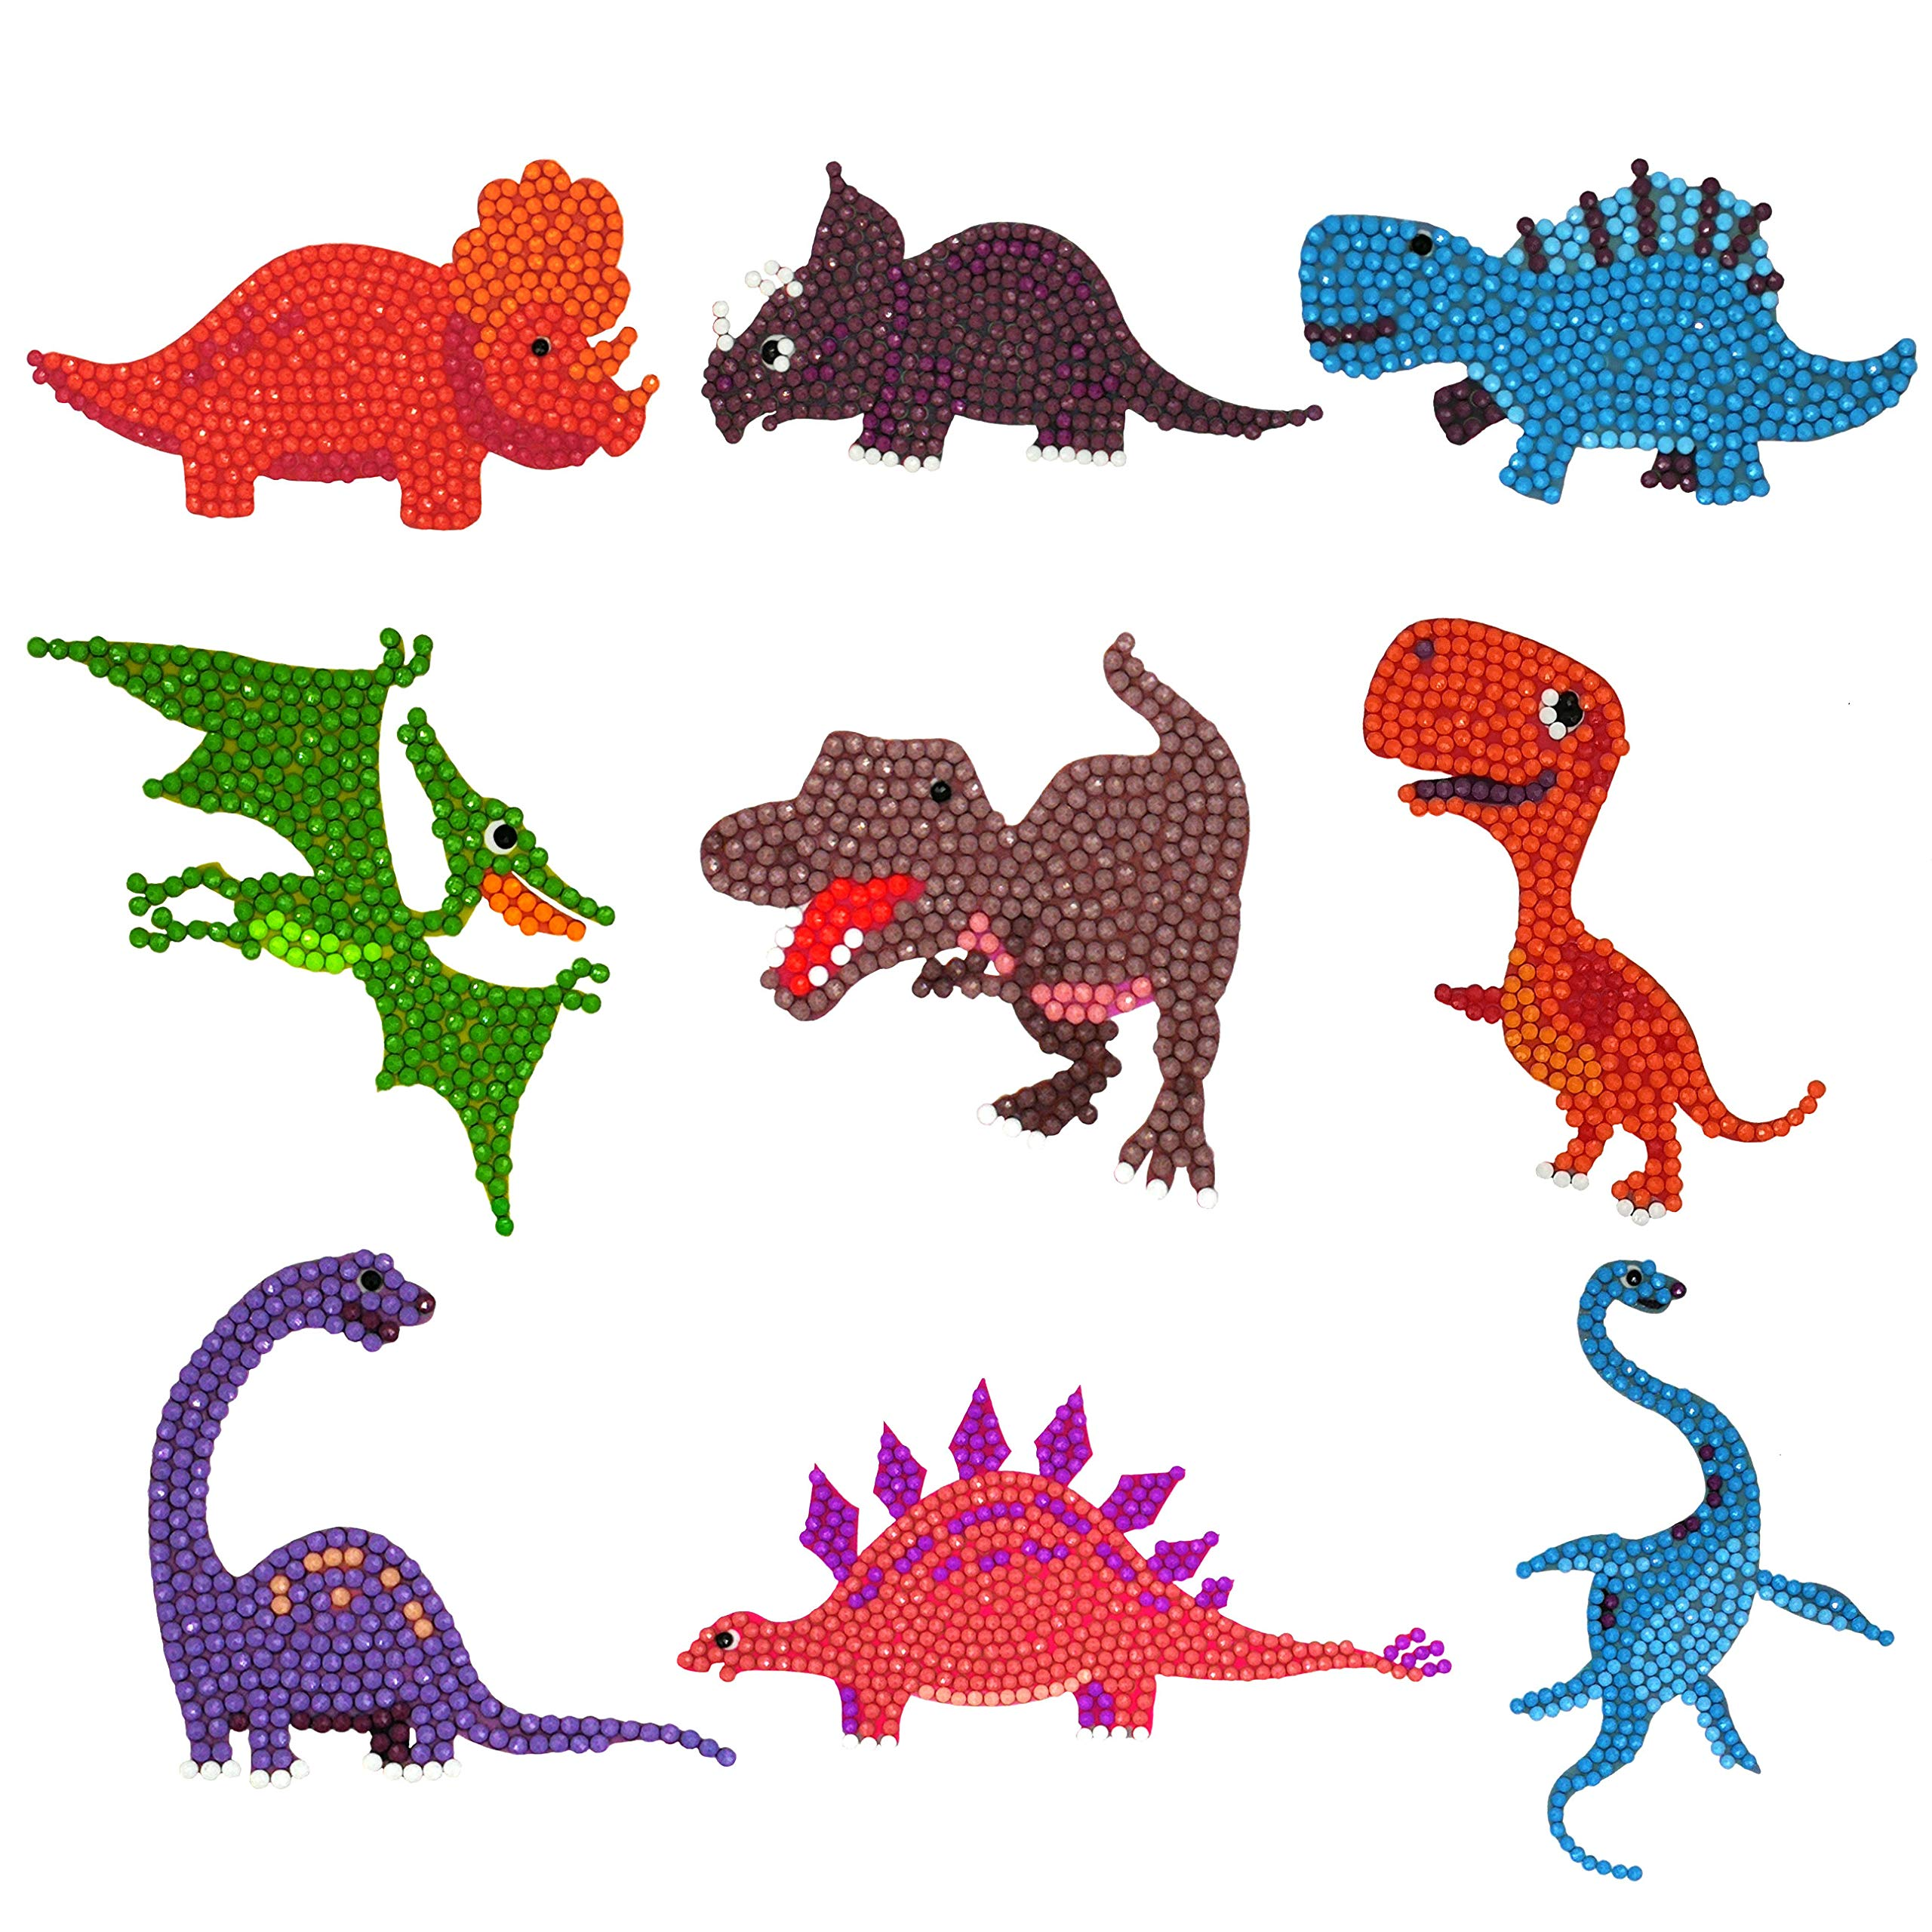 AngelHome Diamond Painting Kits for Kids / 5D DIY Diamond Sticker Paint by Numbers Kits (Dinosaurs) by AngelHome